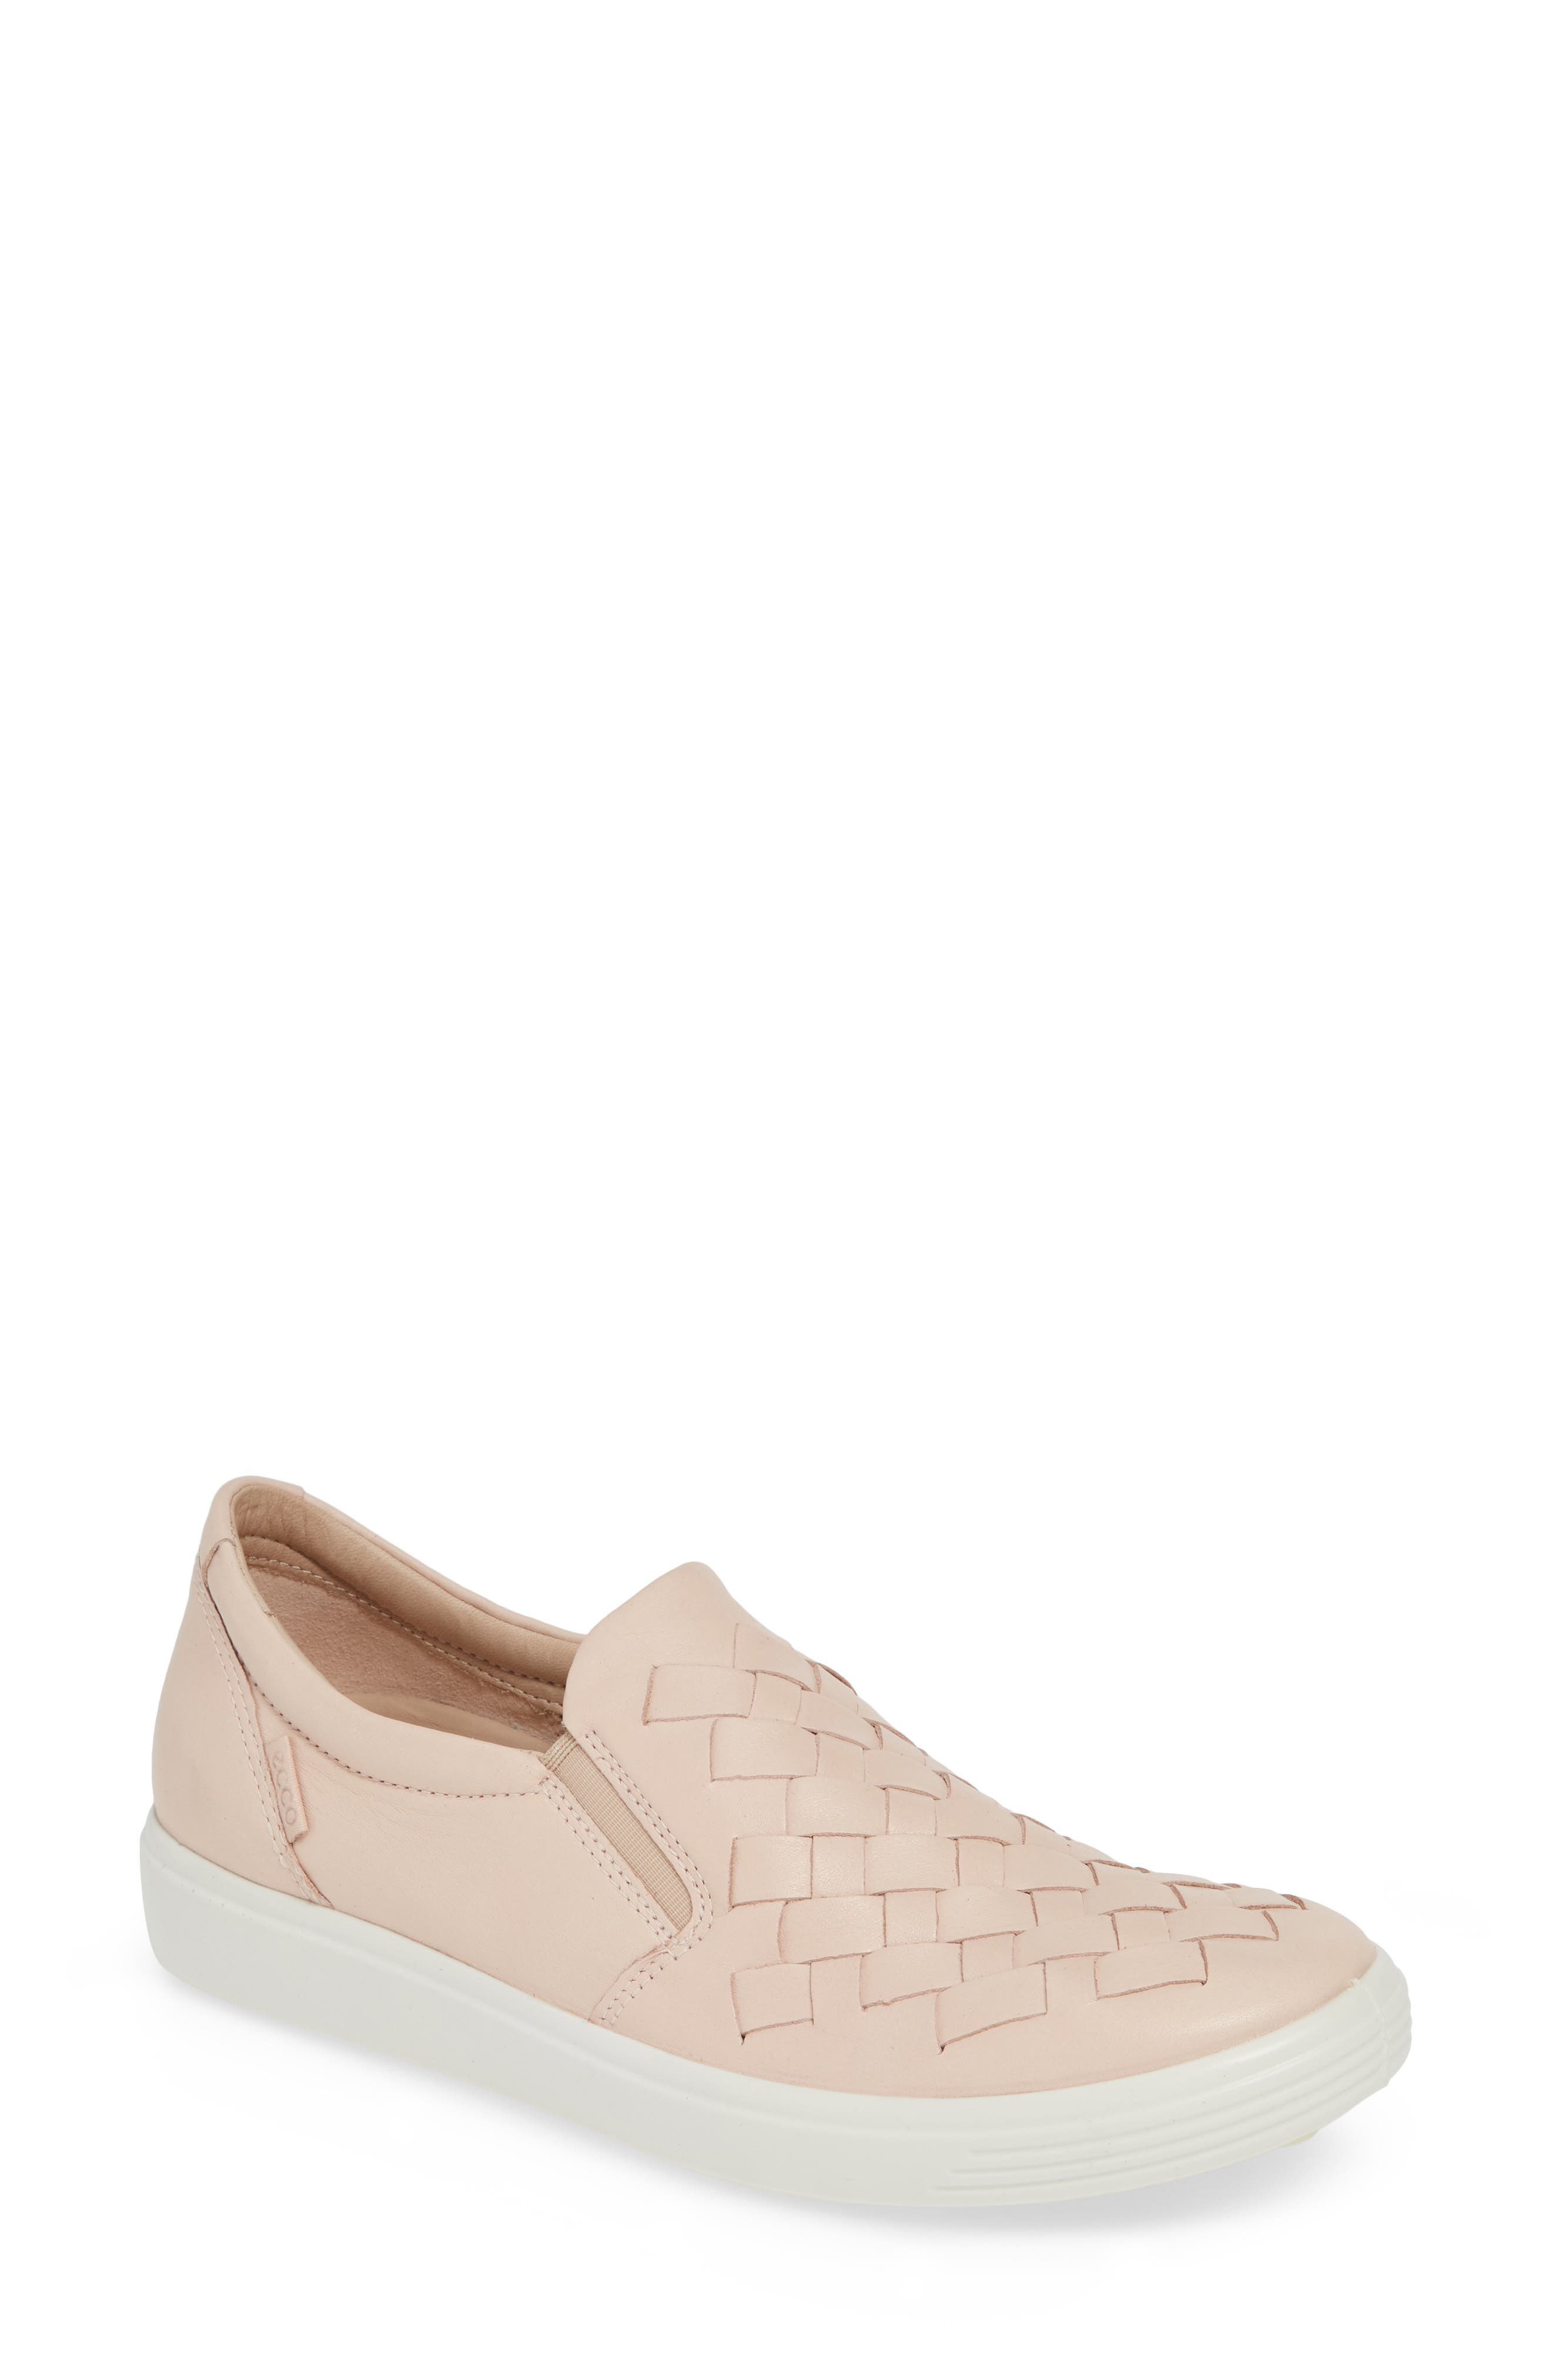 ECCO, Soft 7 Woven Slip-On Sneaker, Main thumbnail 1, color, ROSE DUST LEATHER